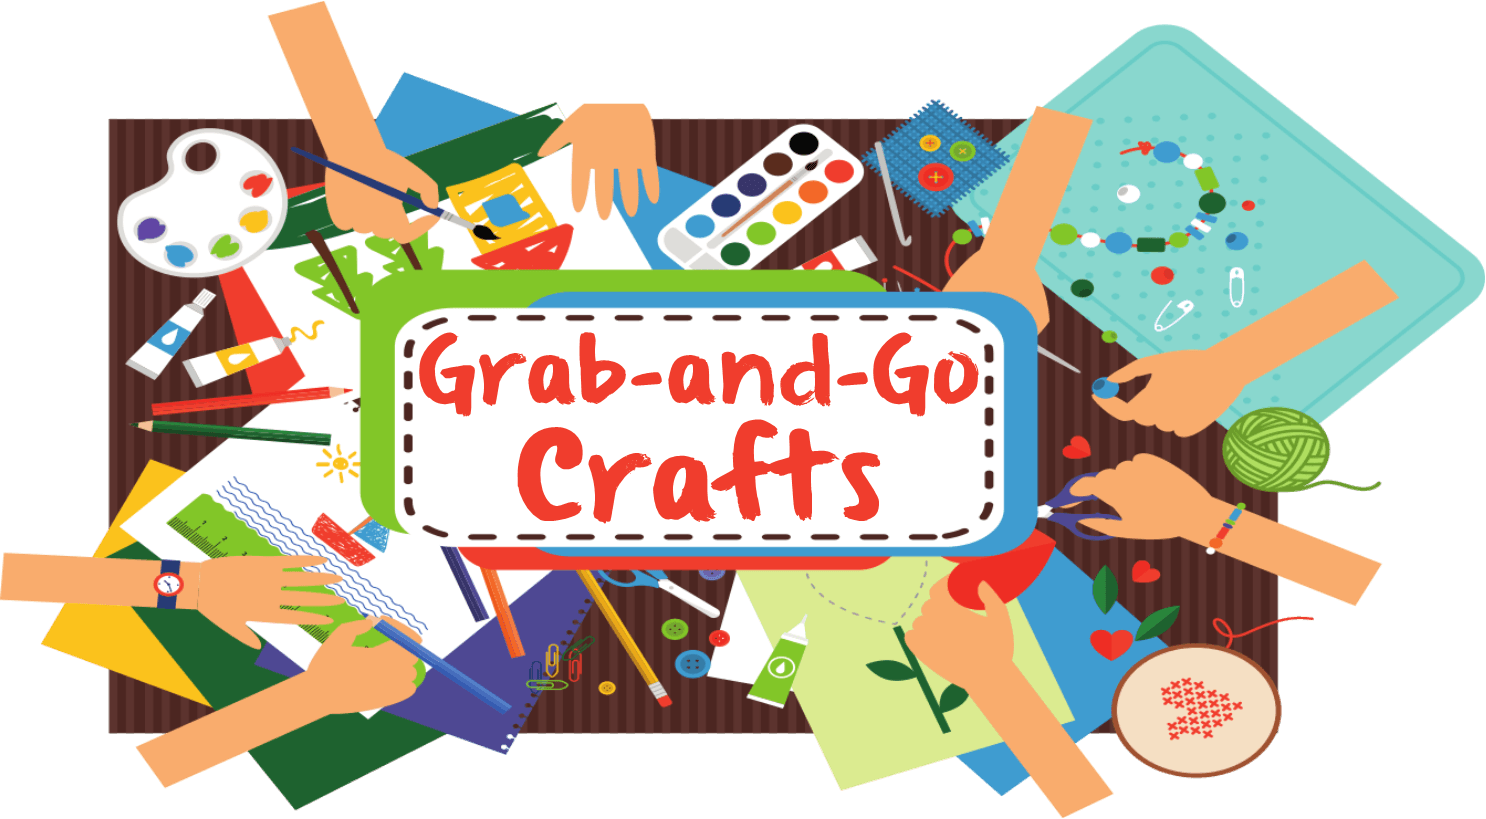 Grab-and-Go Crafts image